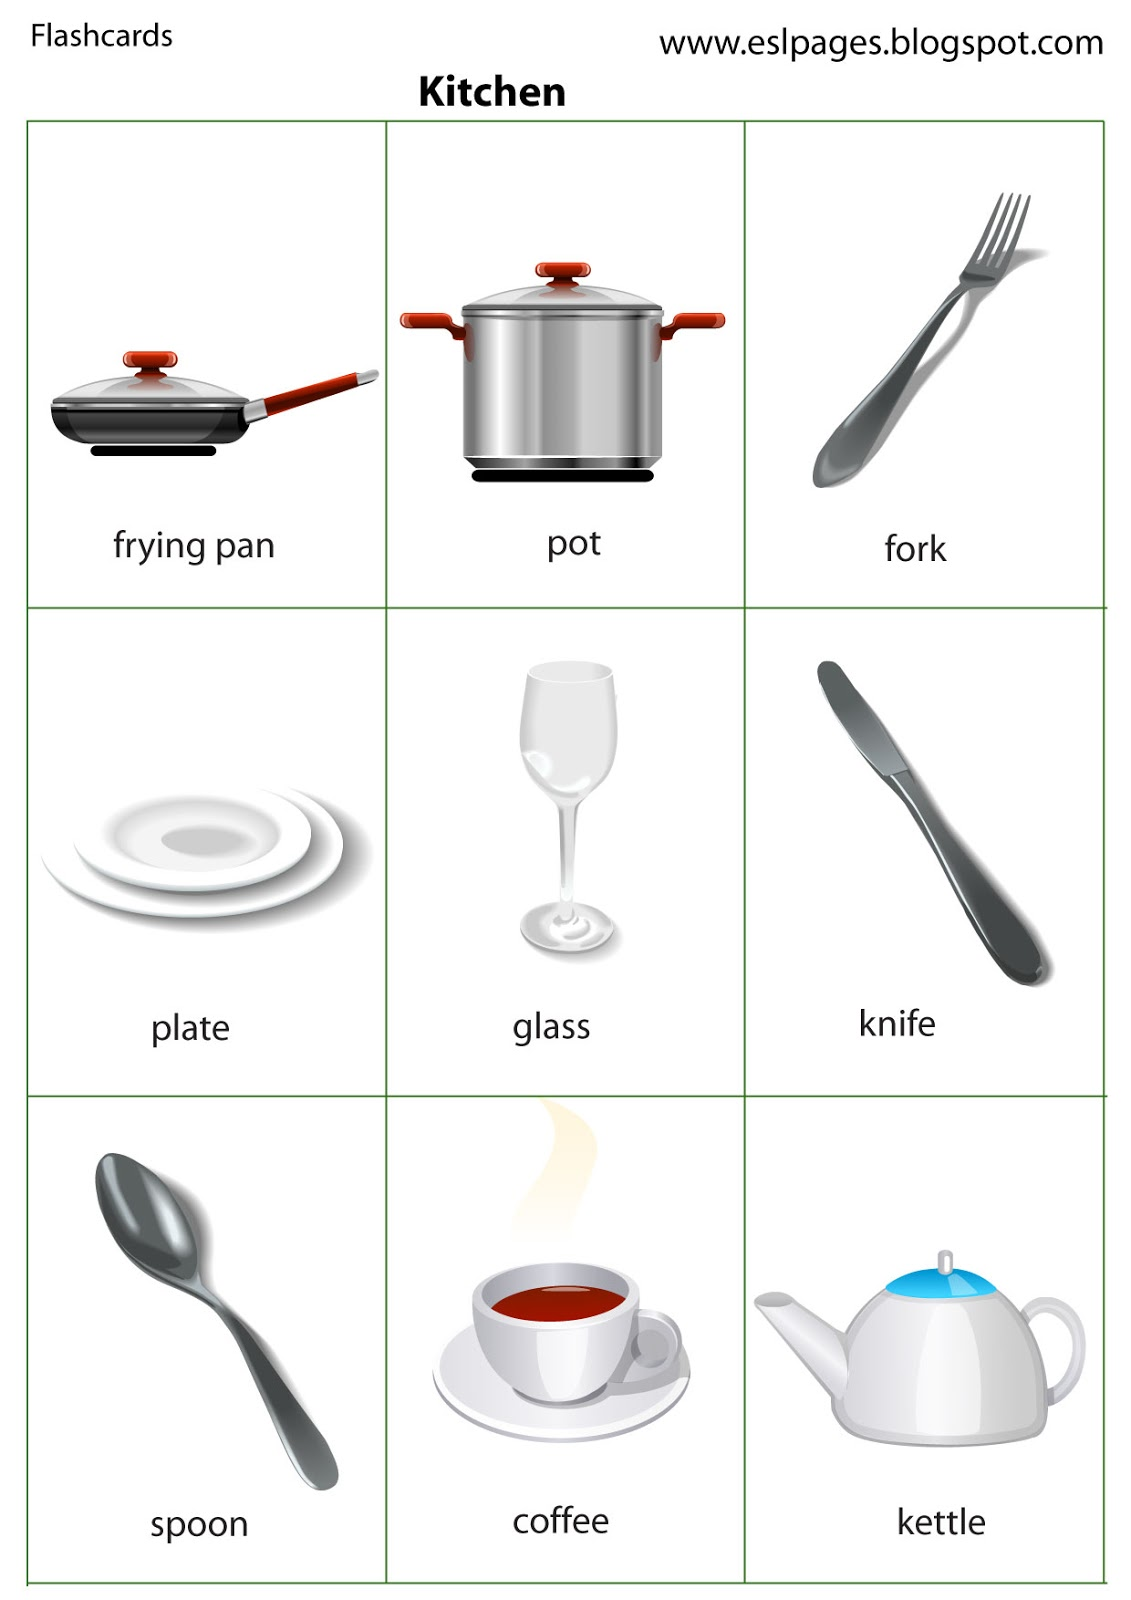 Esl pages kitchen for Kitchen set name in english